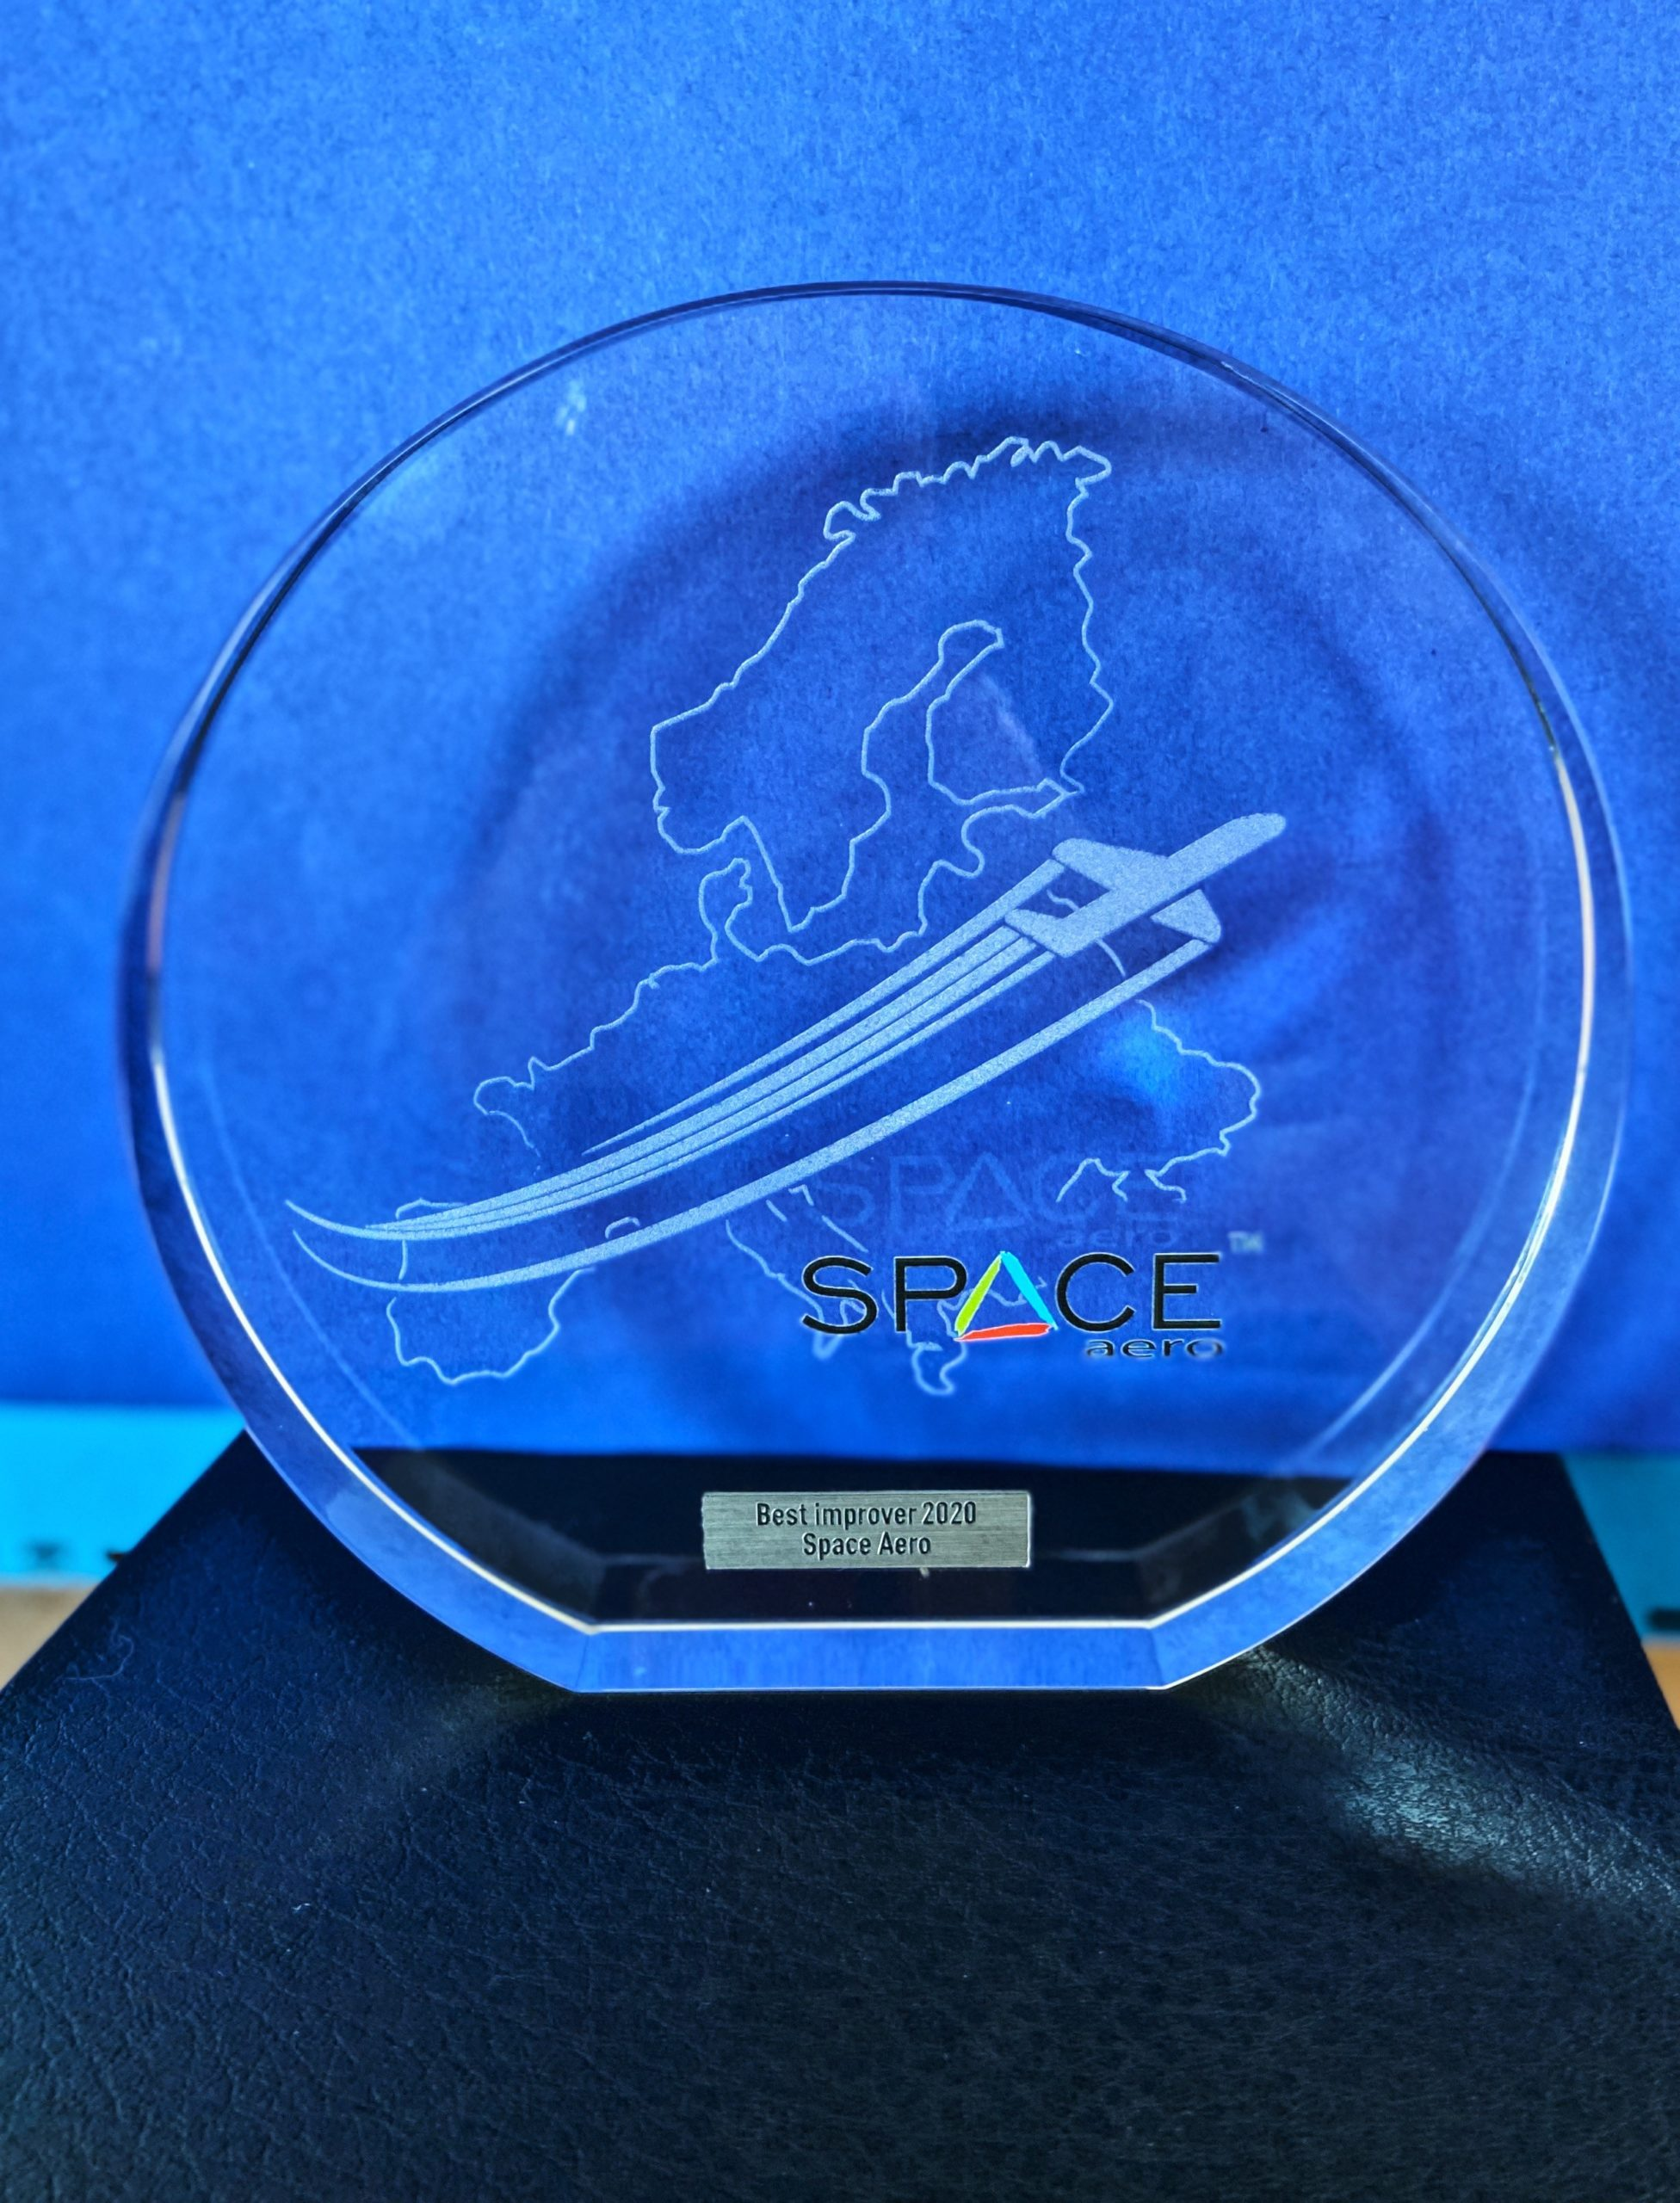 Candidature Trophée SPACE 2020 « Best Improver »